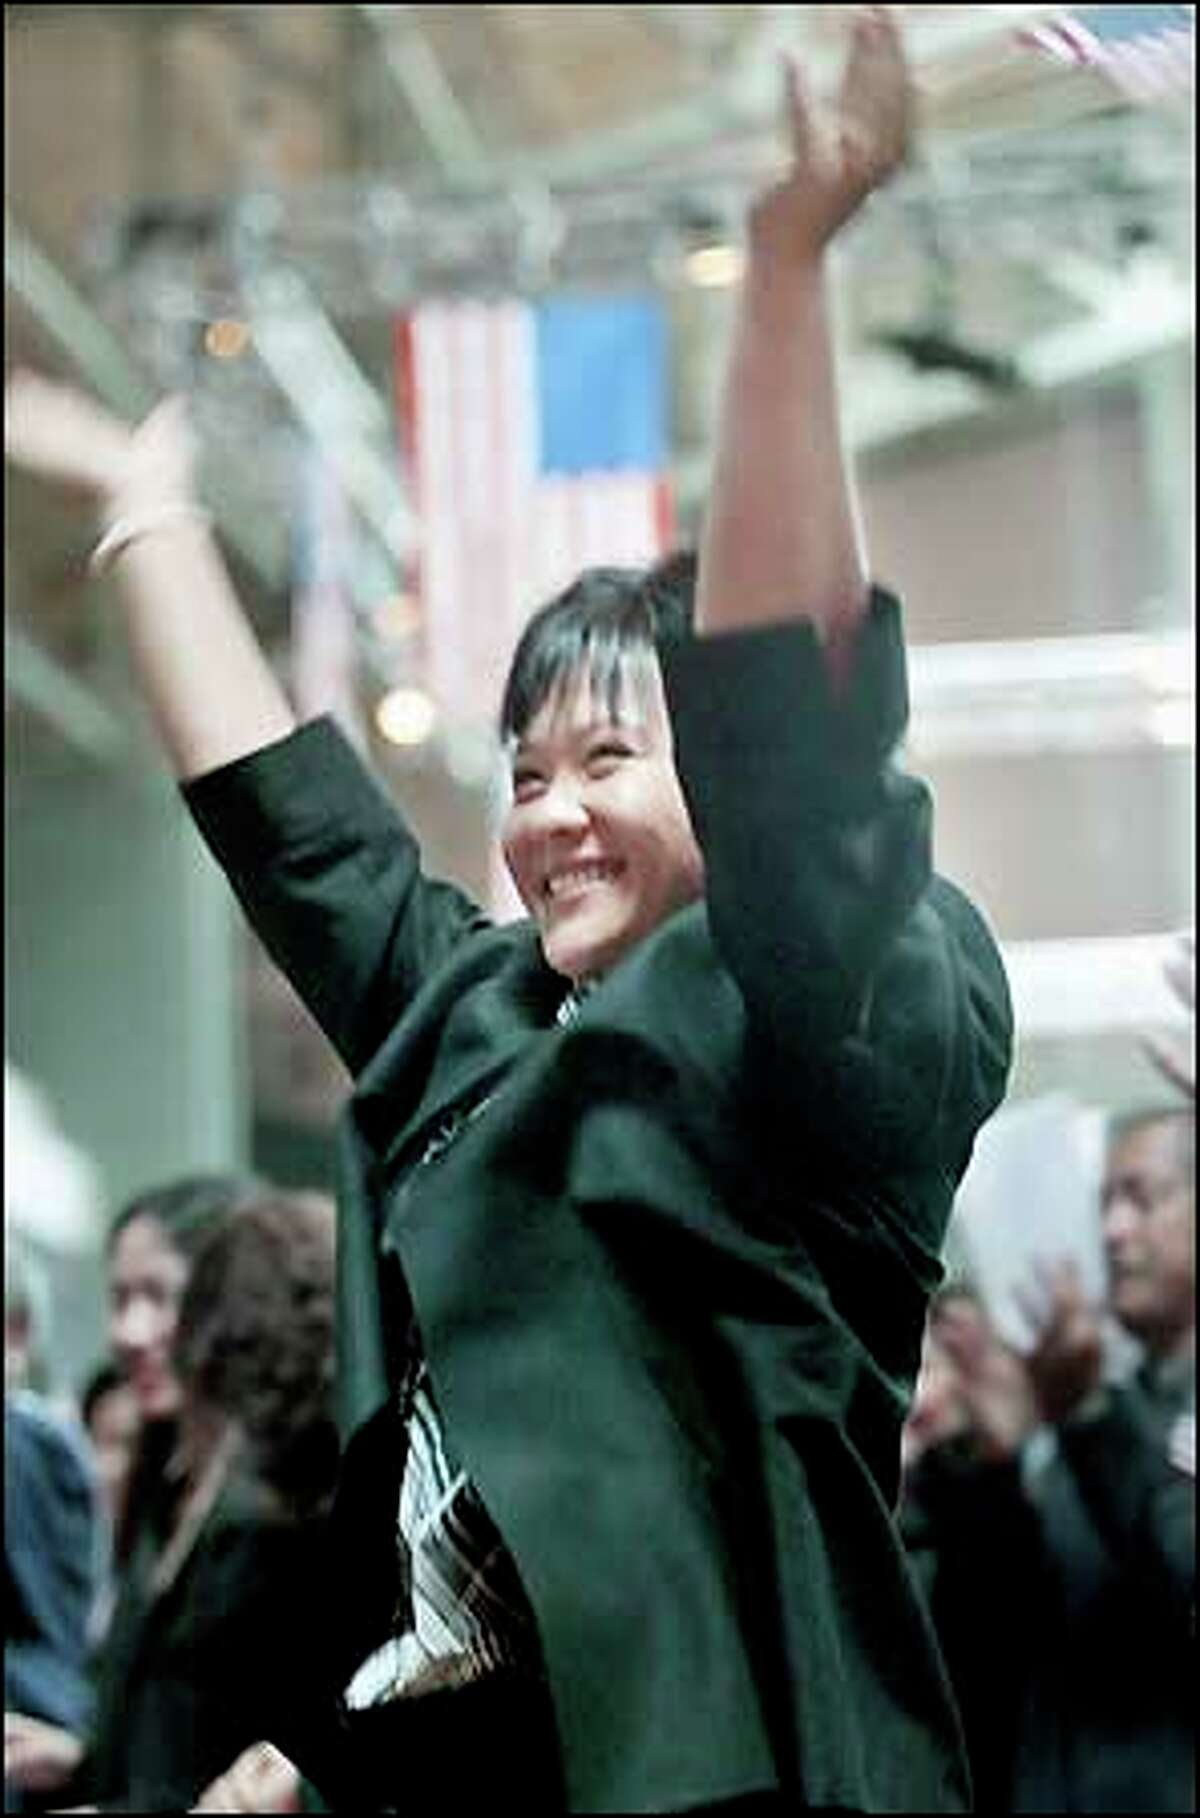 Ying Shen Winkle of Taiwan jumps for joy after being sworn in as a new citizen yesterday. Immigrants from 65 countries became Americans.